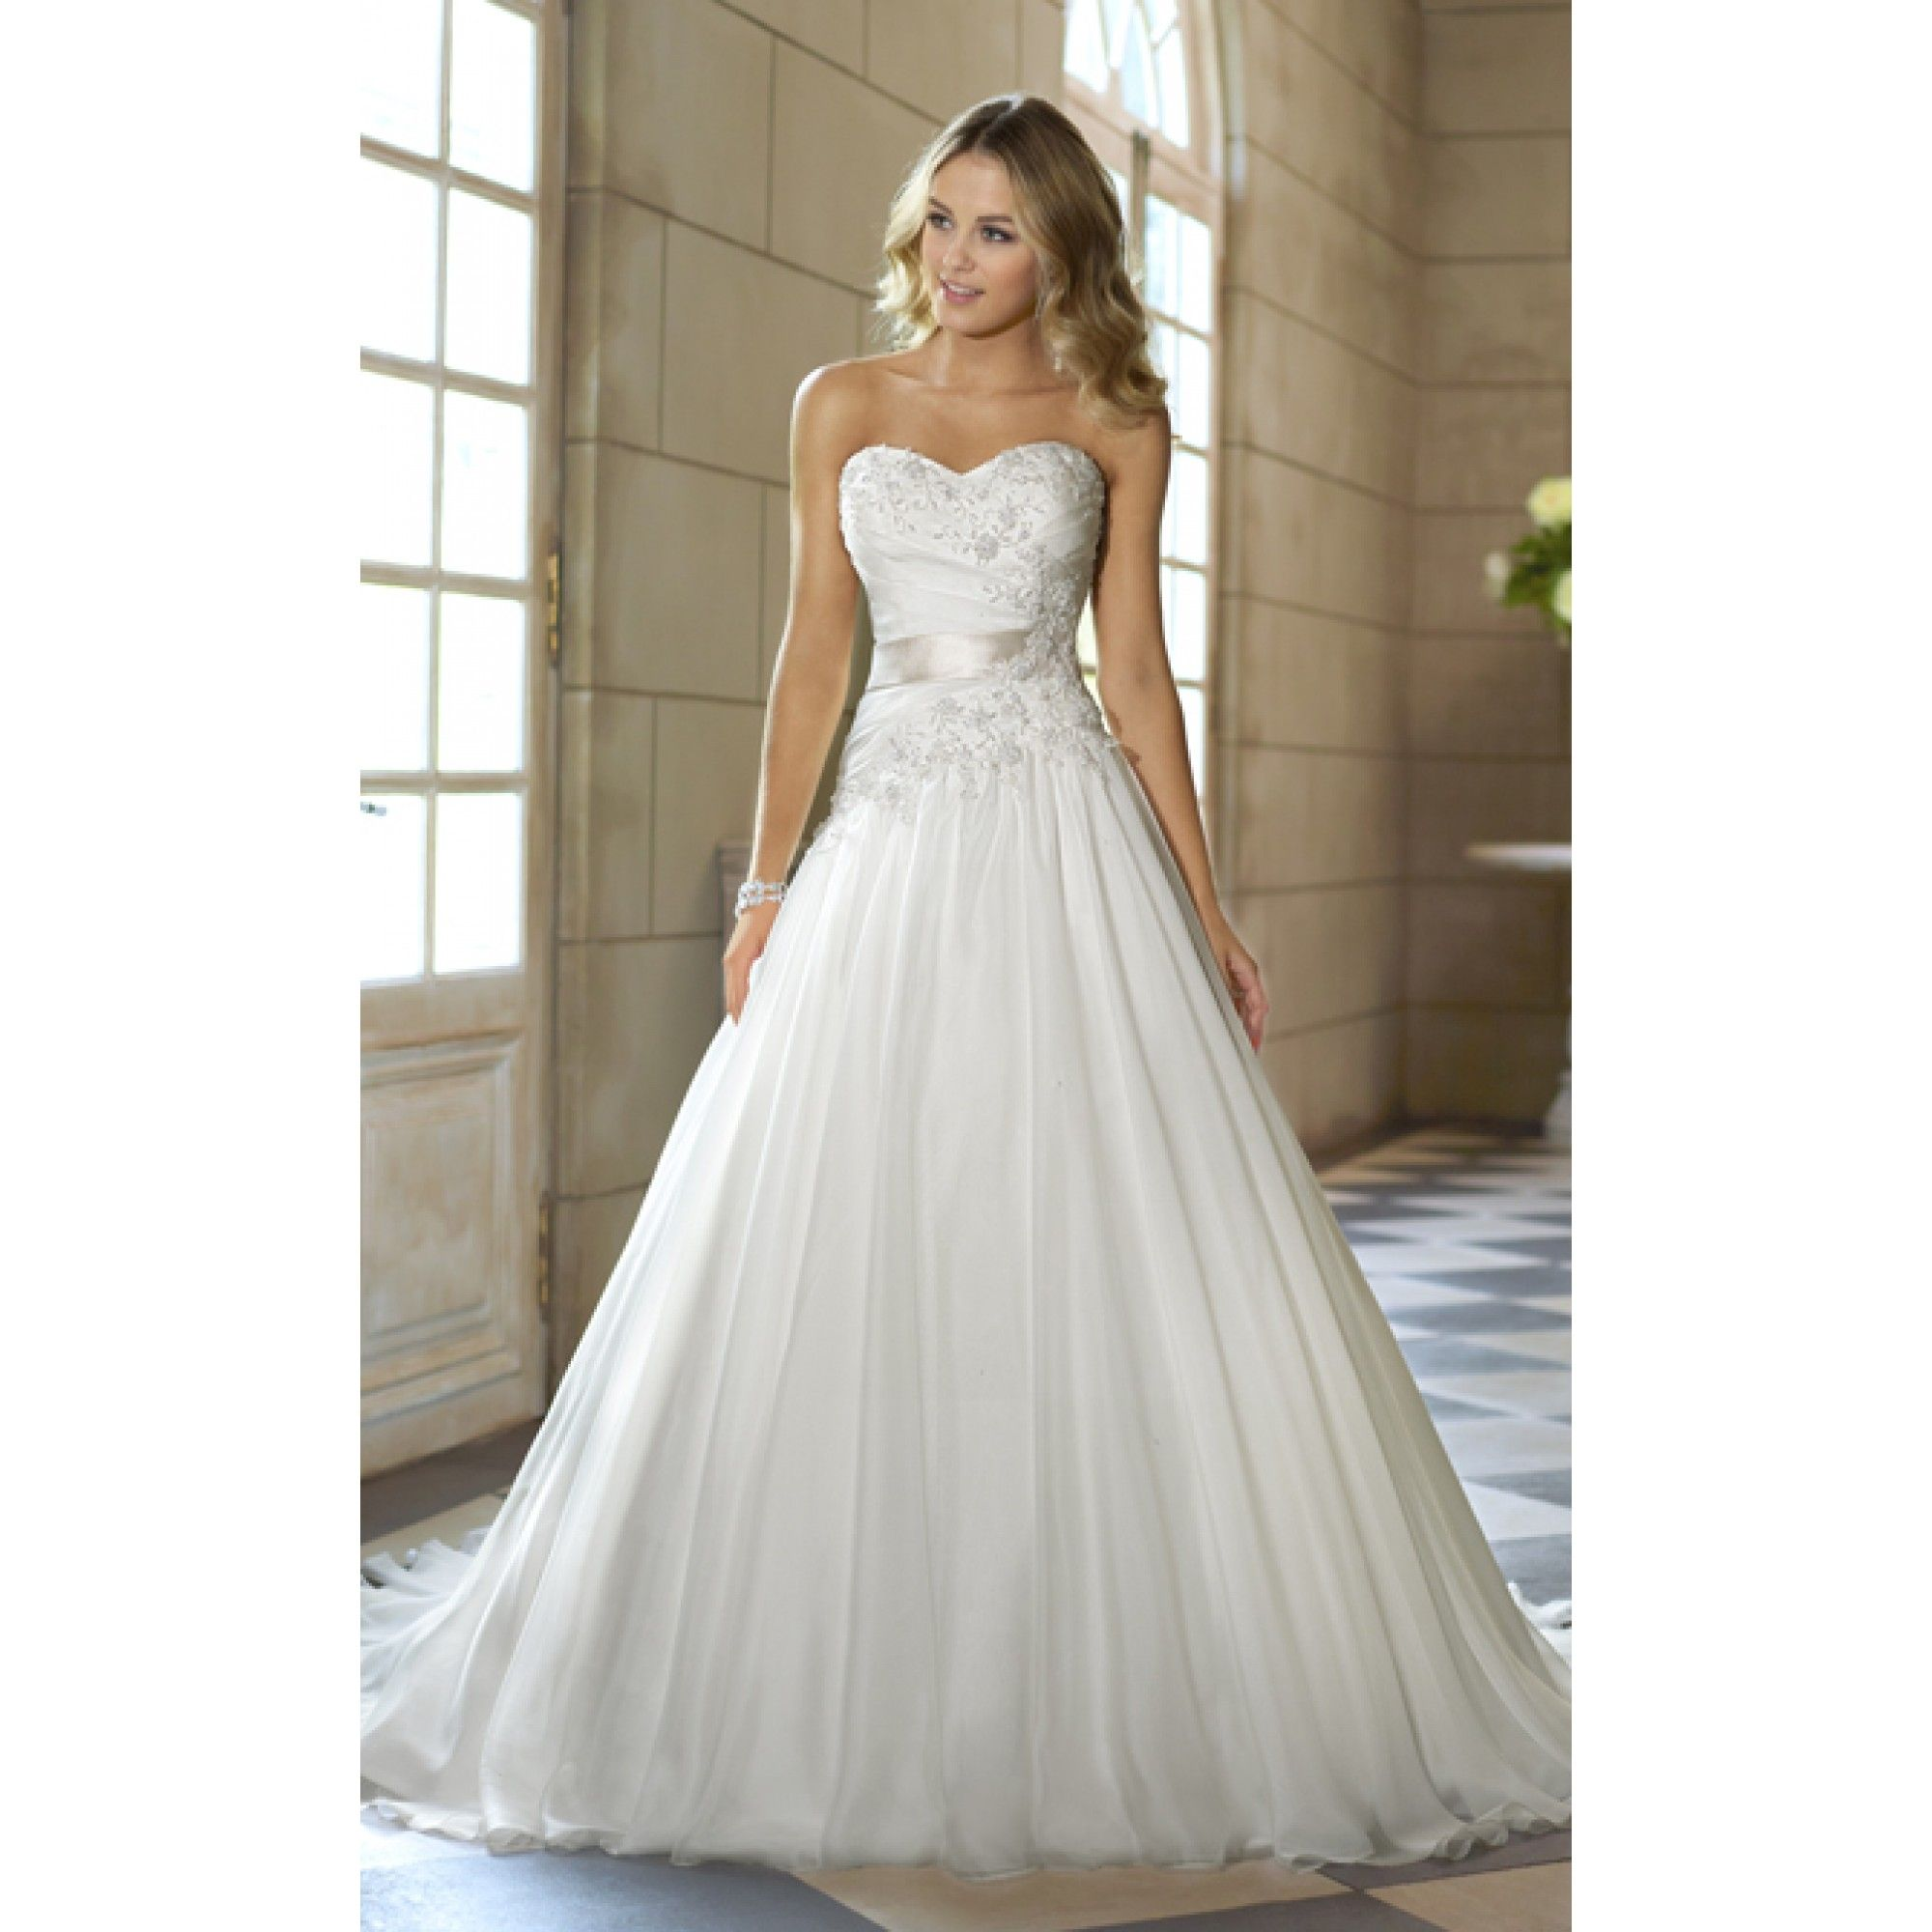 Wedding dresses for a beach wedding  stella york bridal  Stella York Stella York wedding Dress